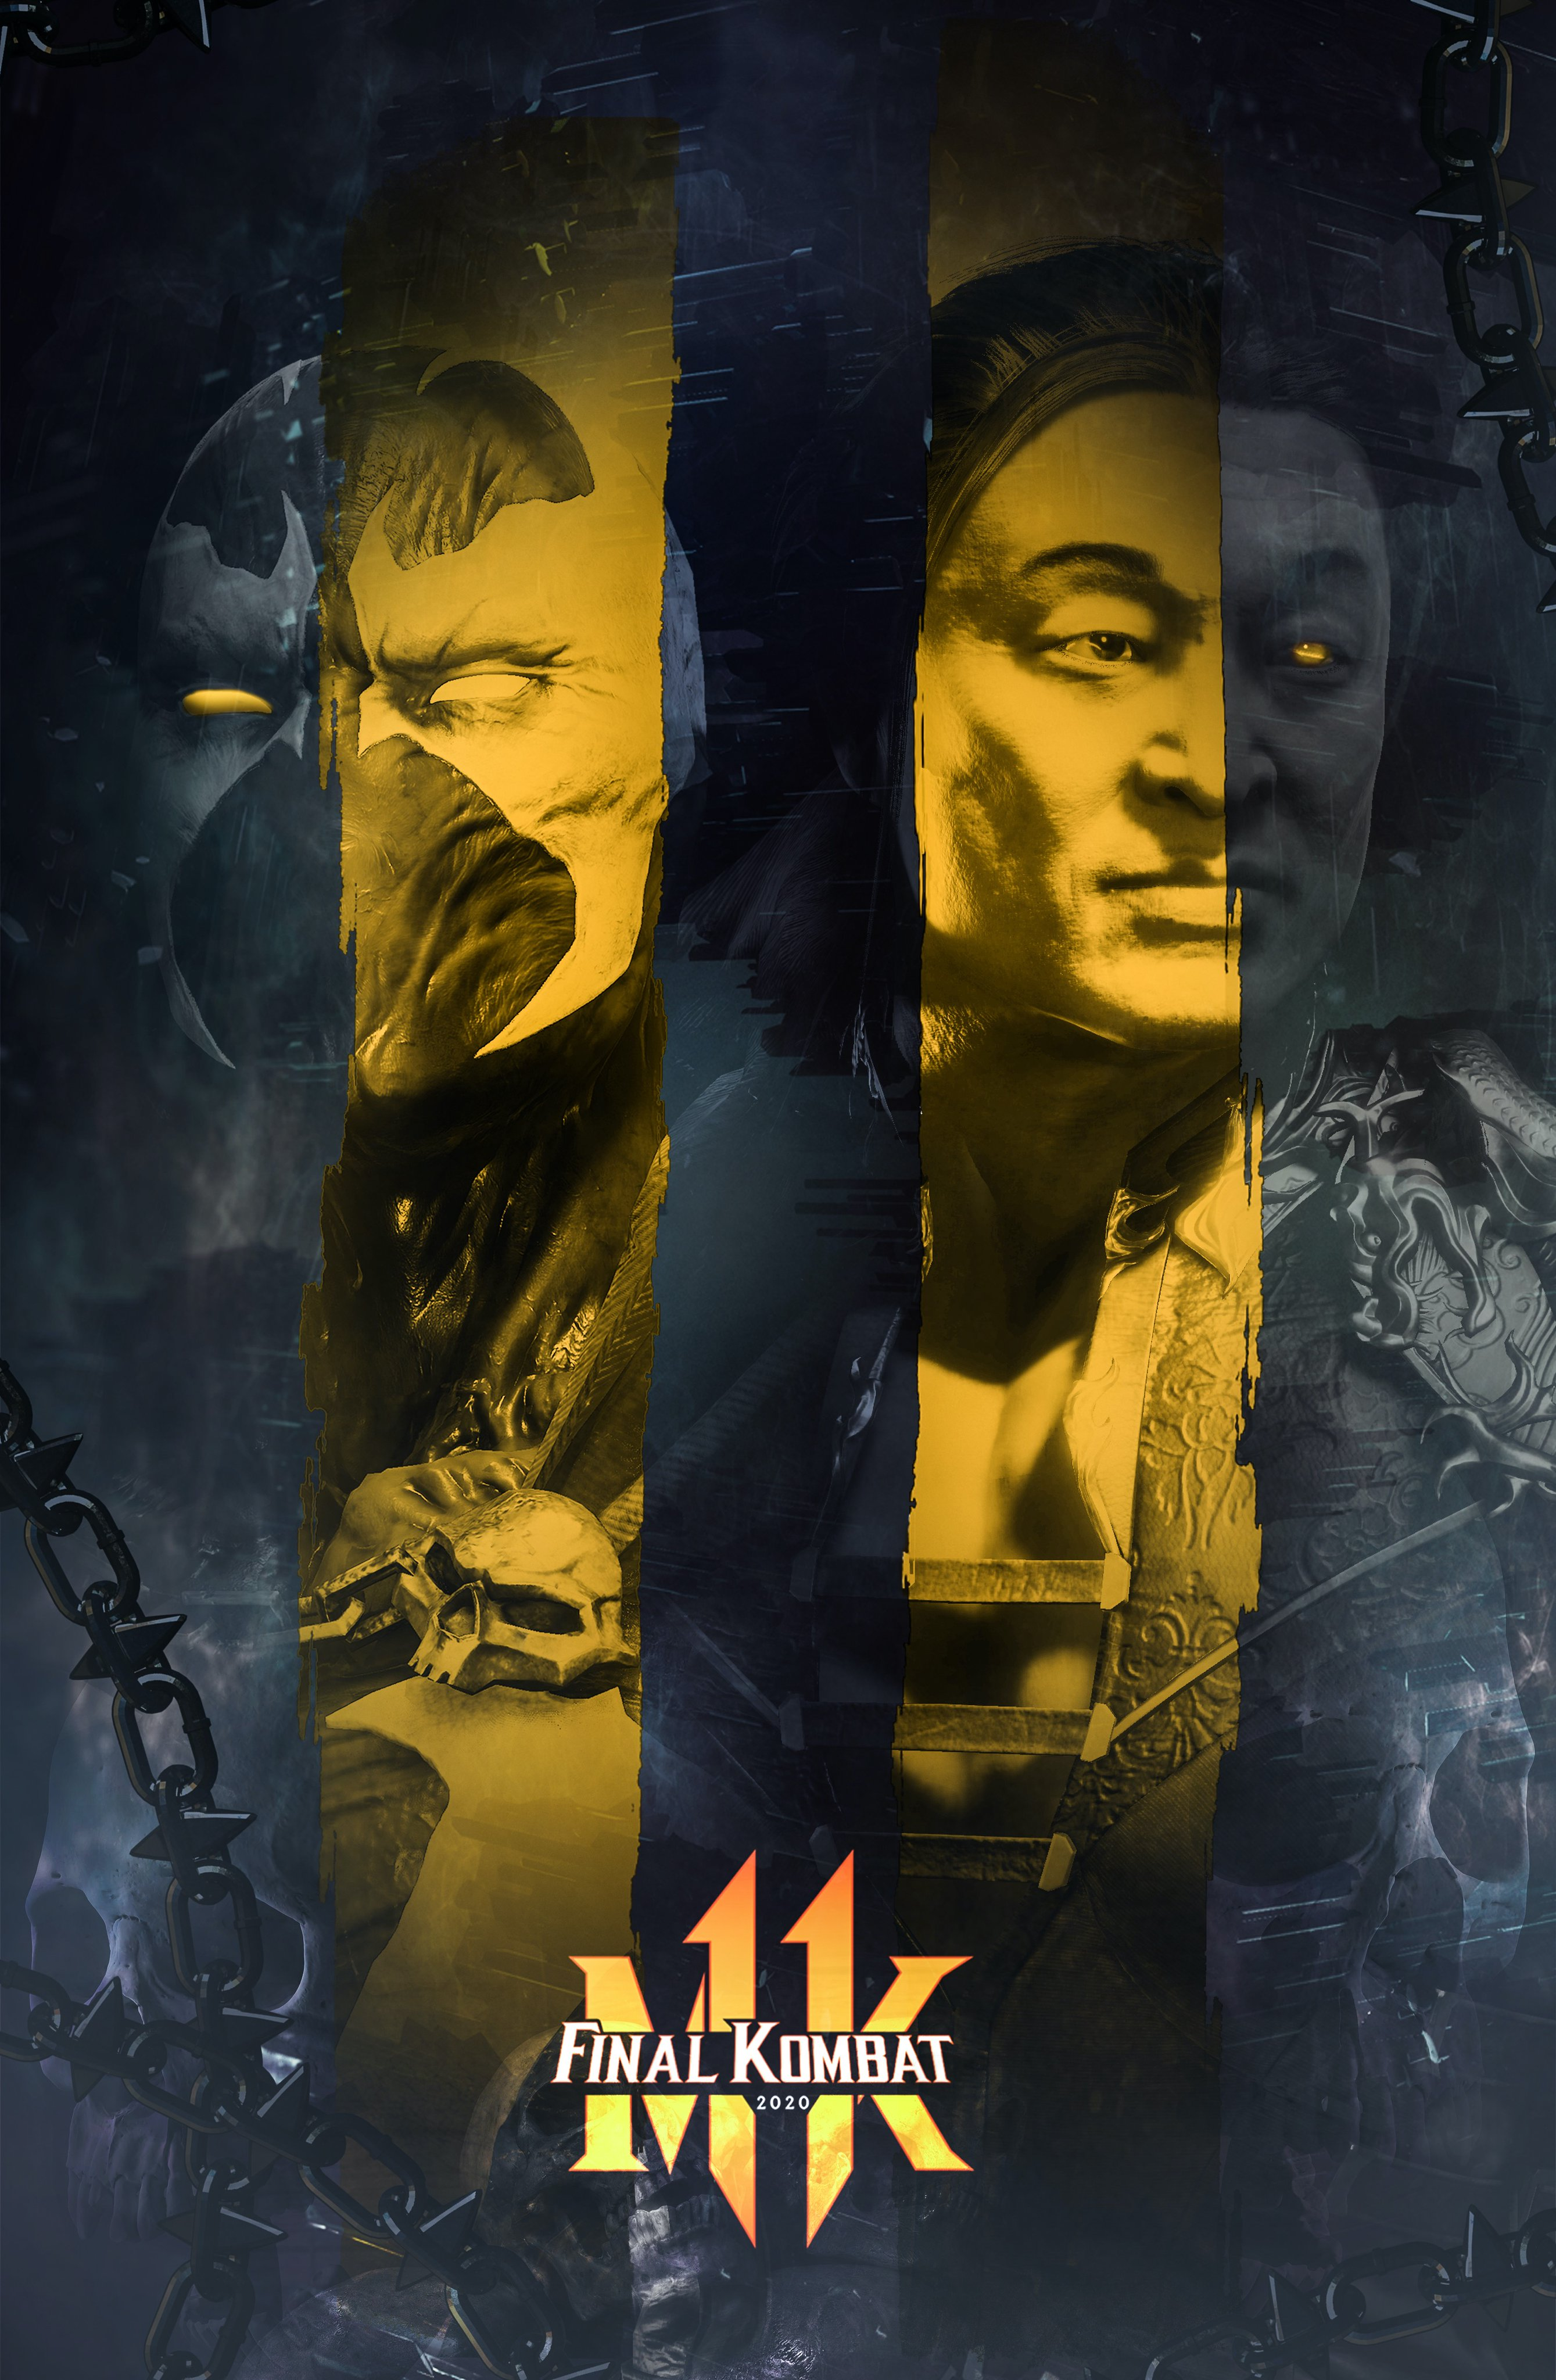 final kombat poster gives us another